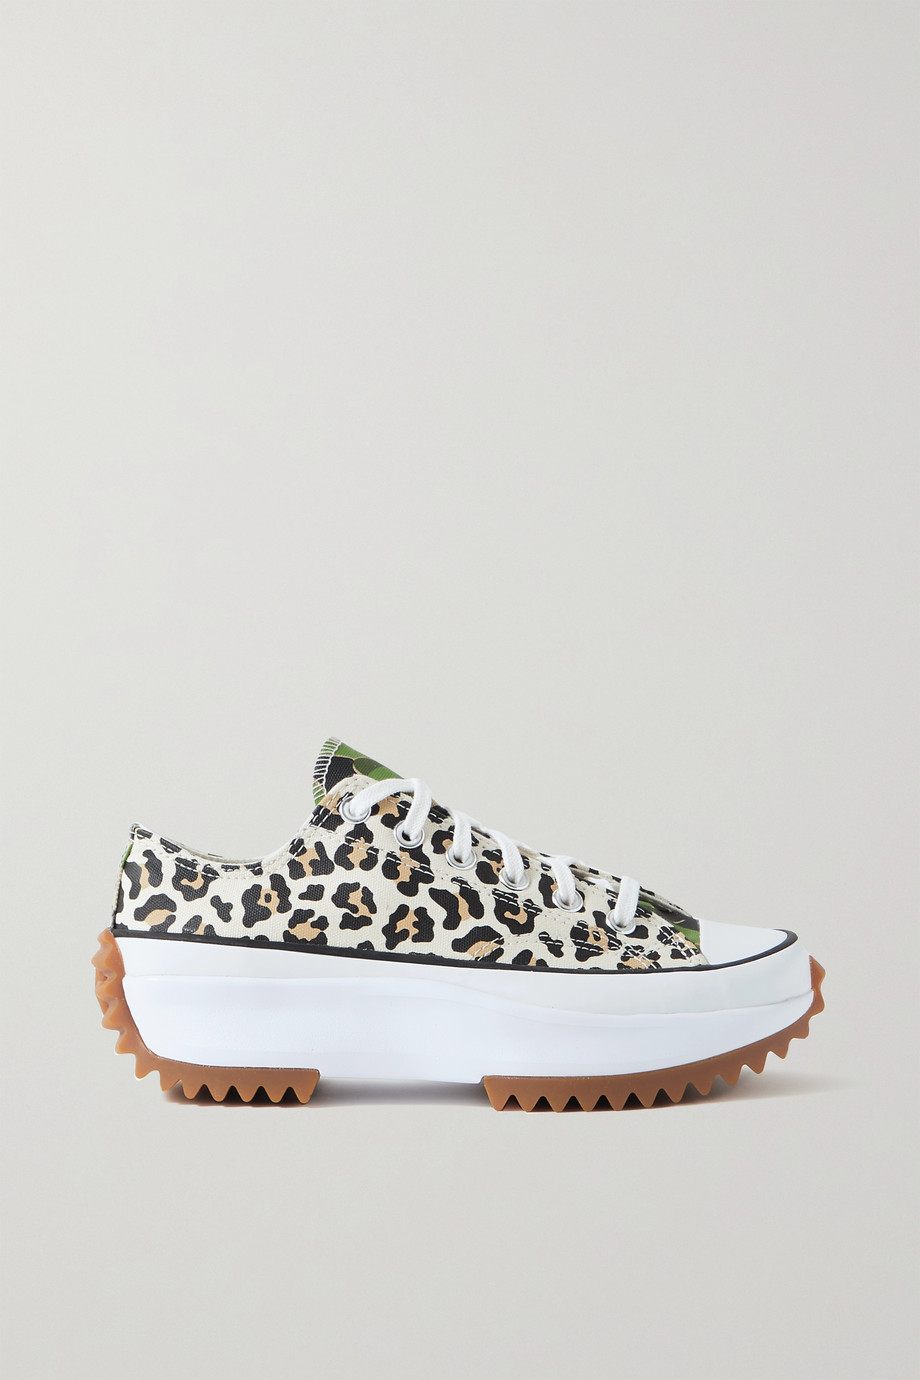 Converse Run Star Hike leopard and camouflage-print canvas sneakers